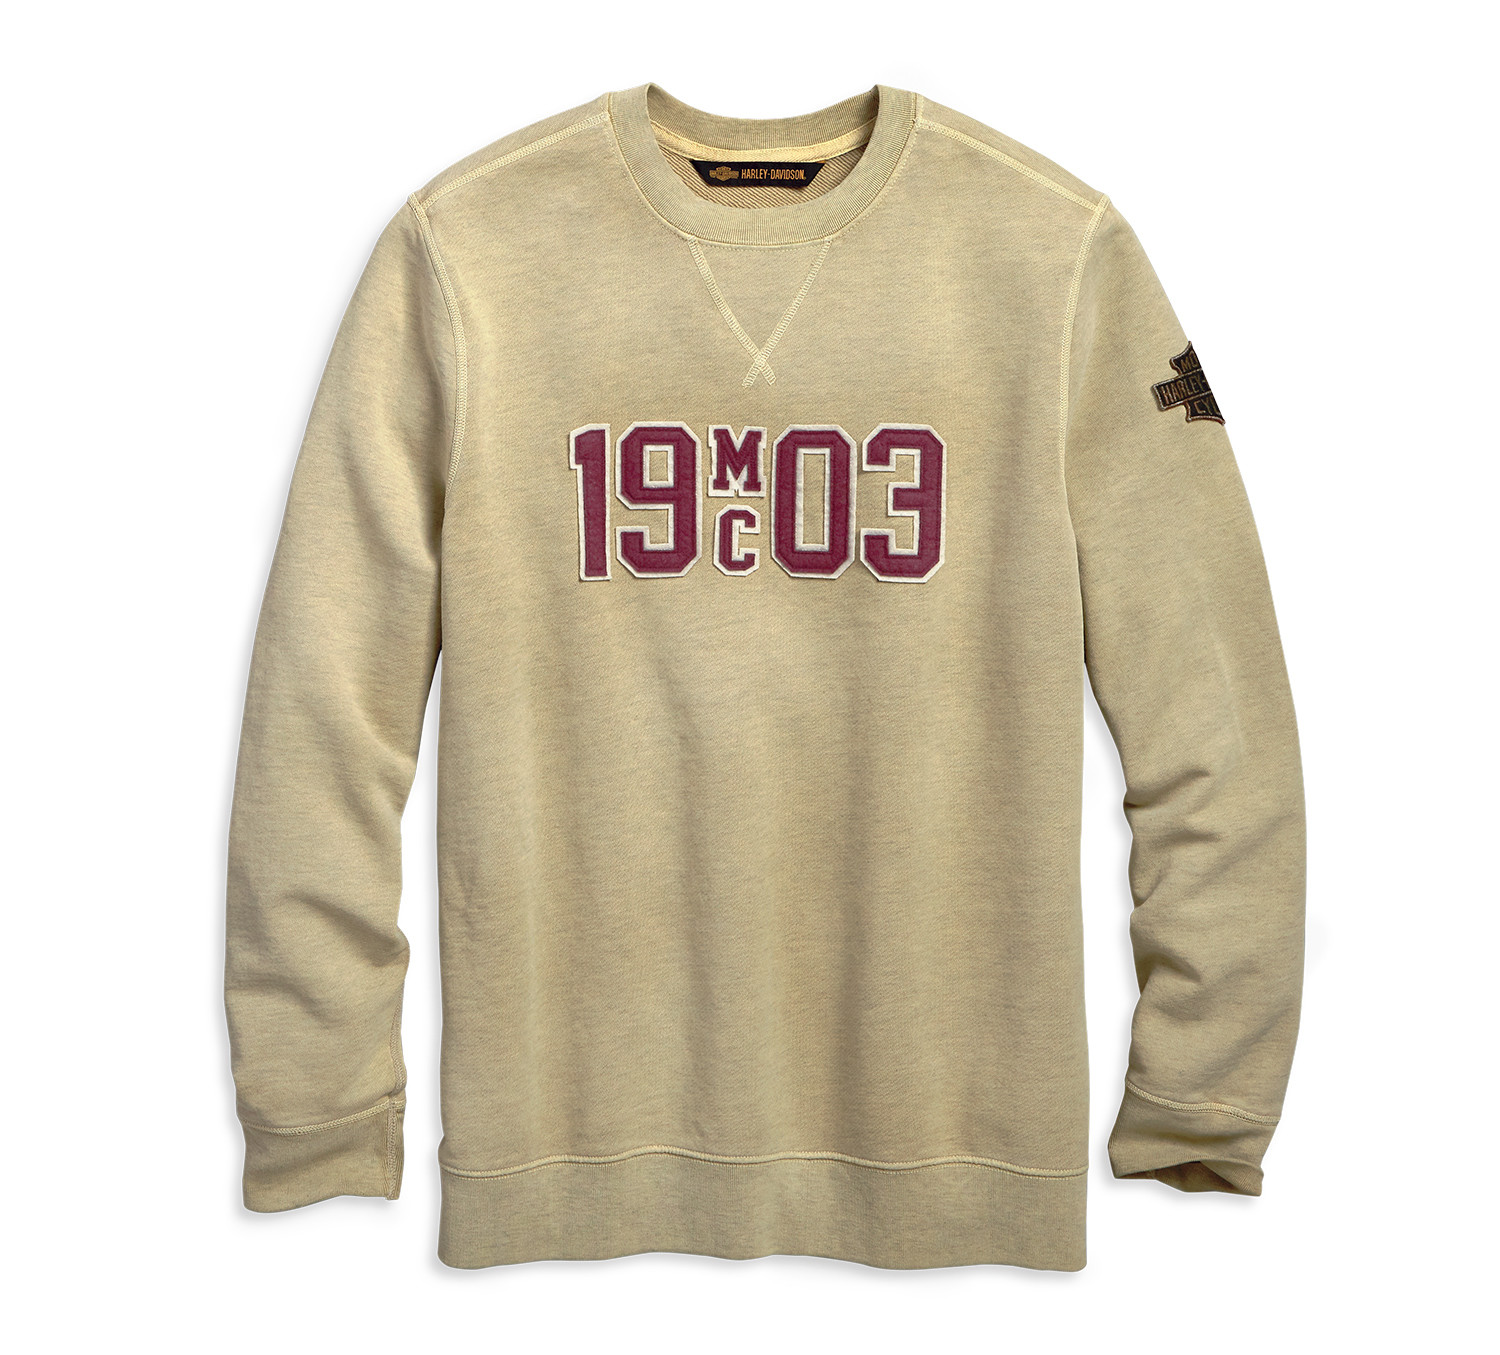 Sweatshirt Men 1903 Double Layer Felt Sim Fit